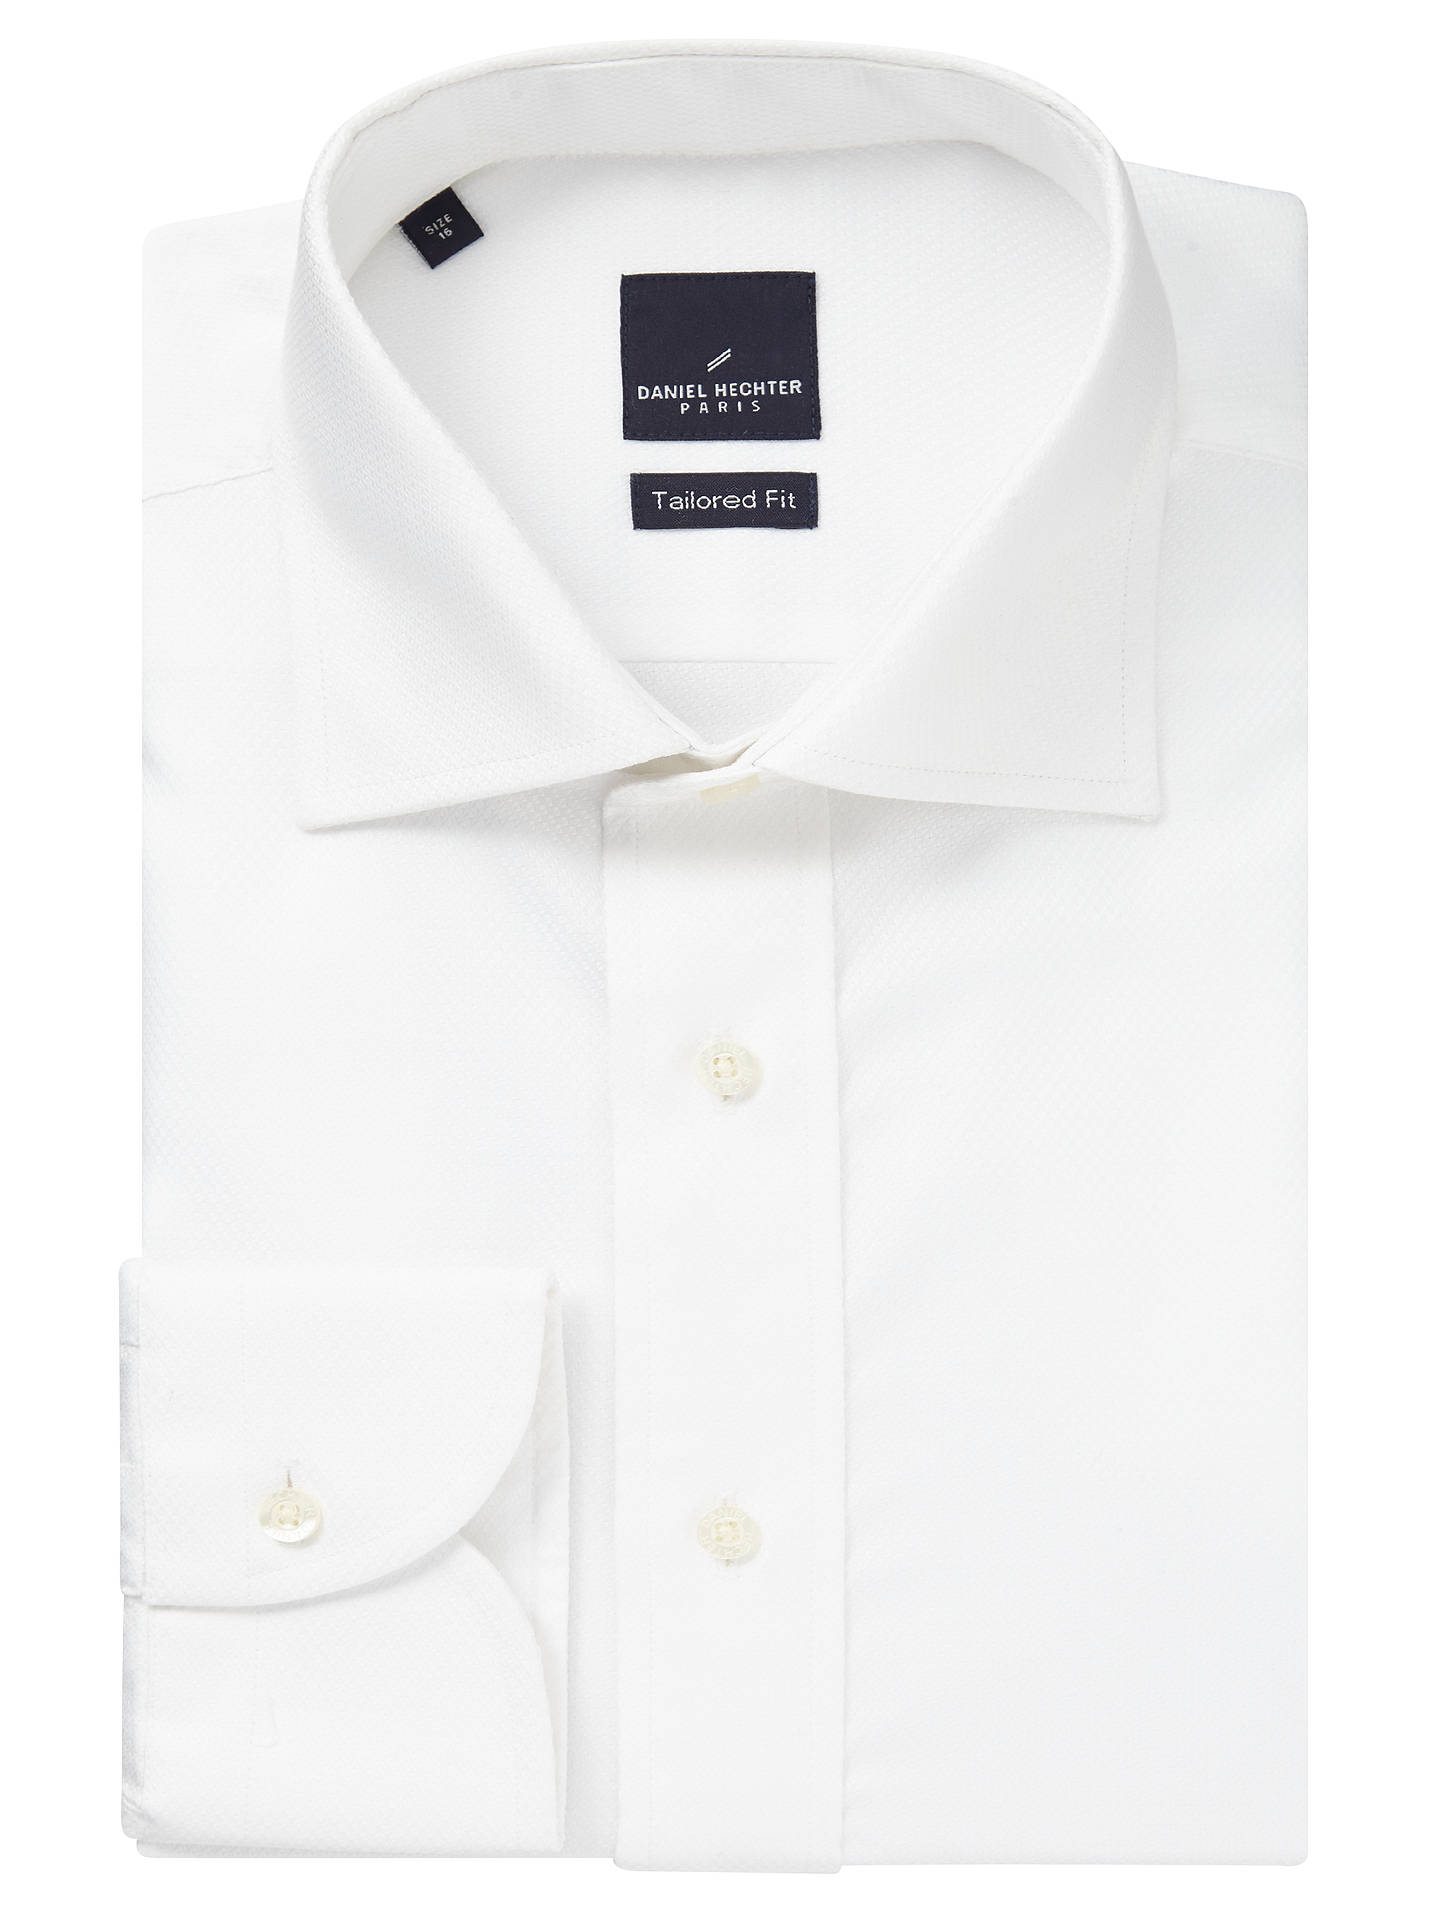 buy online 879b3 f3564 Daniel Hechter Jacquard Cotton Tailored Fit Shirt, White at ...